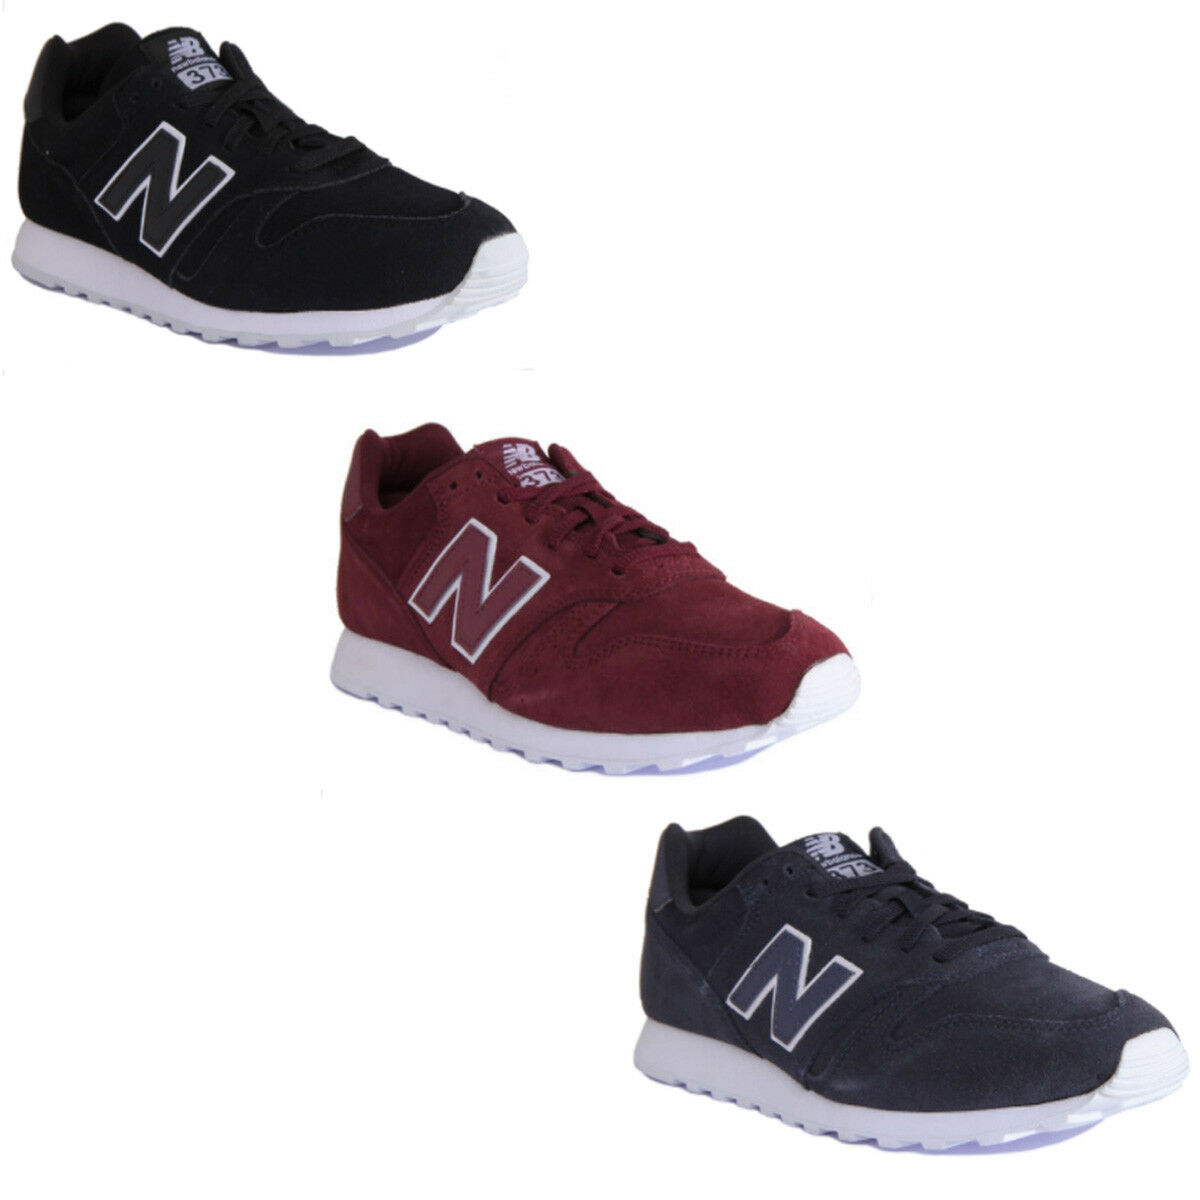 New Balance Dark MI373TM Modern Classic Femme Suede Leather Dark Balance Bleu Trainers 3-6.5 d76229